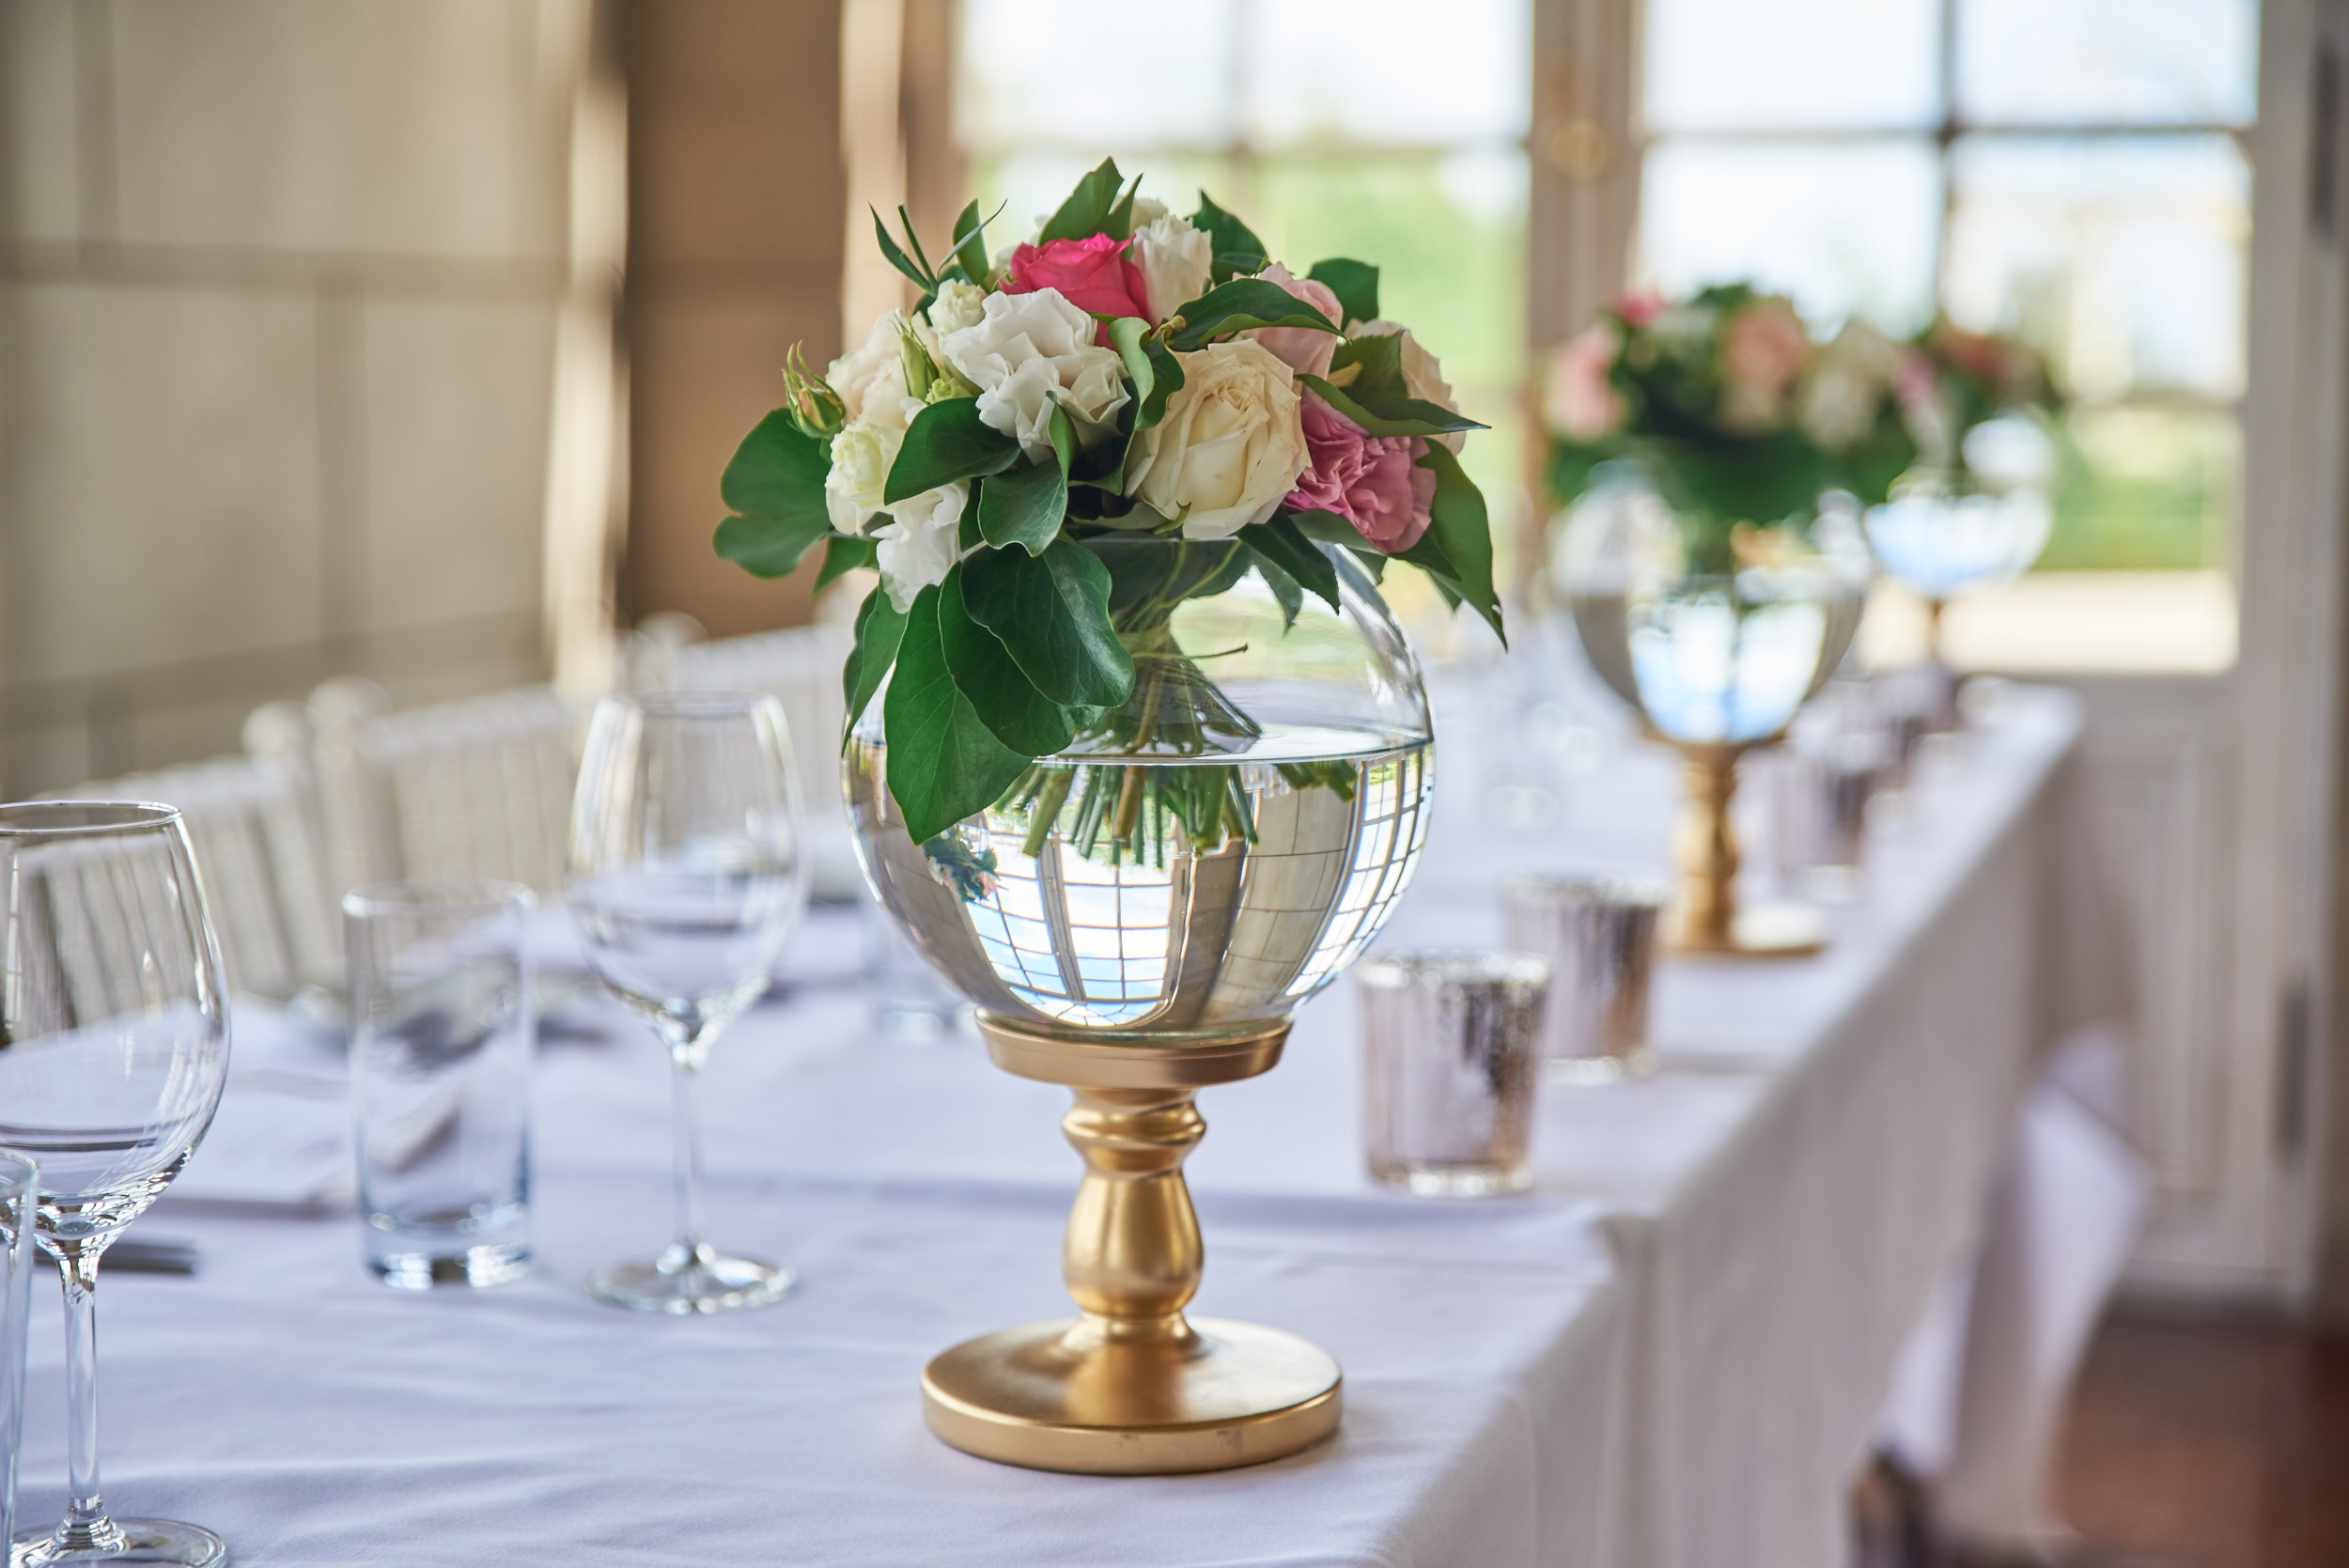 Table decorations at Campbell Point House wedding reception